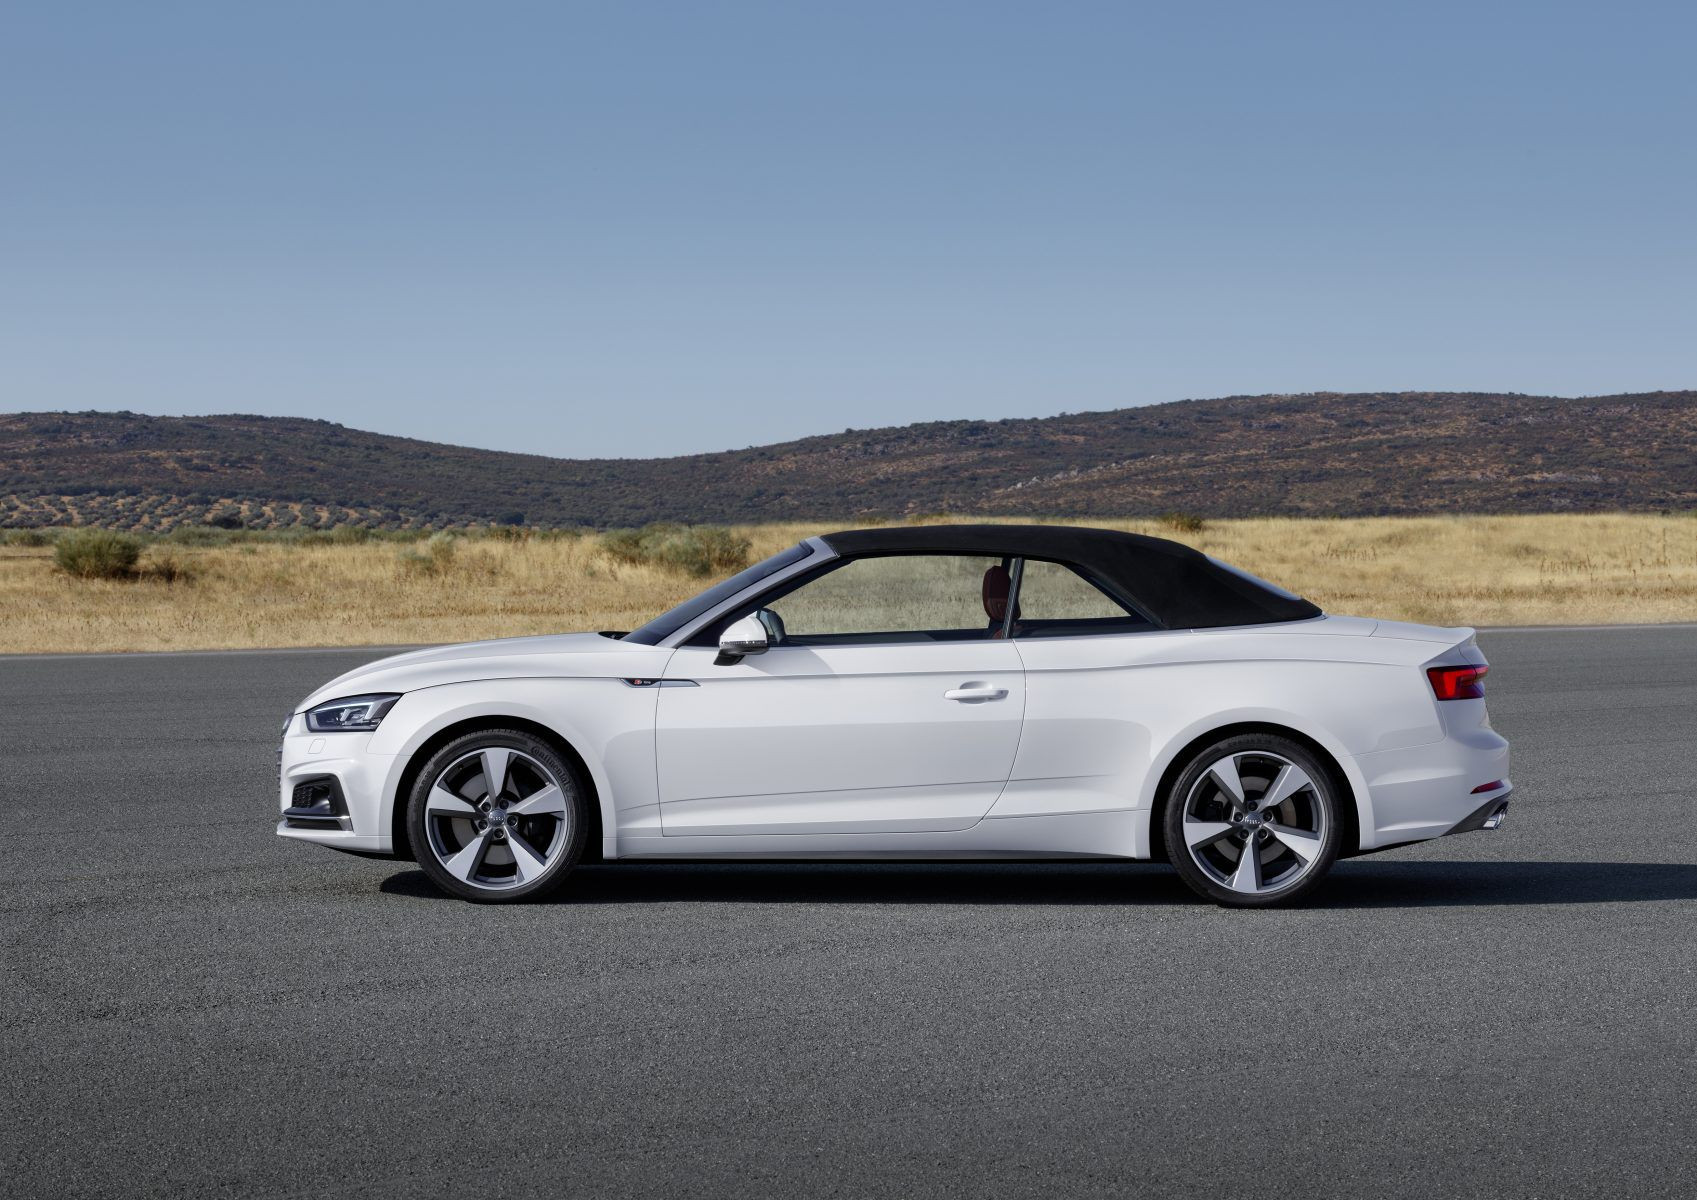 A5 Cabriolet in white